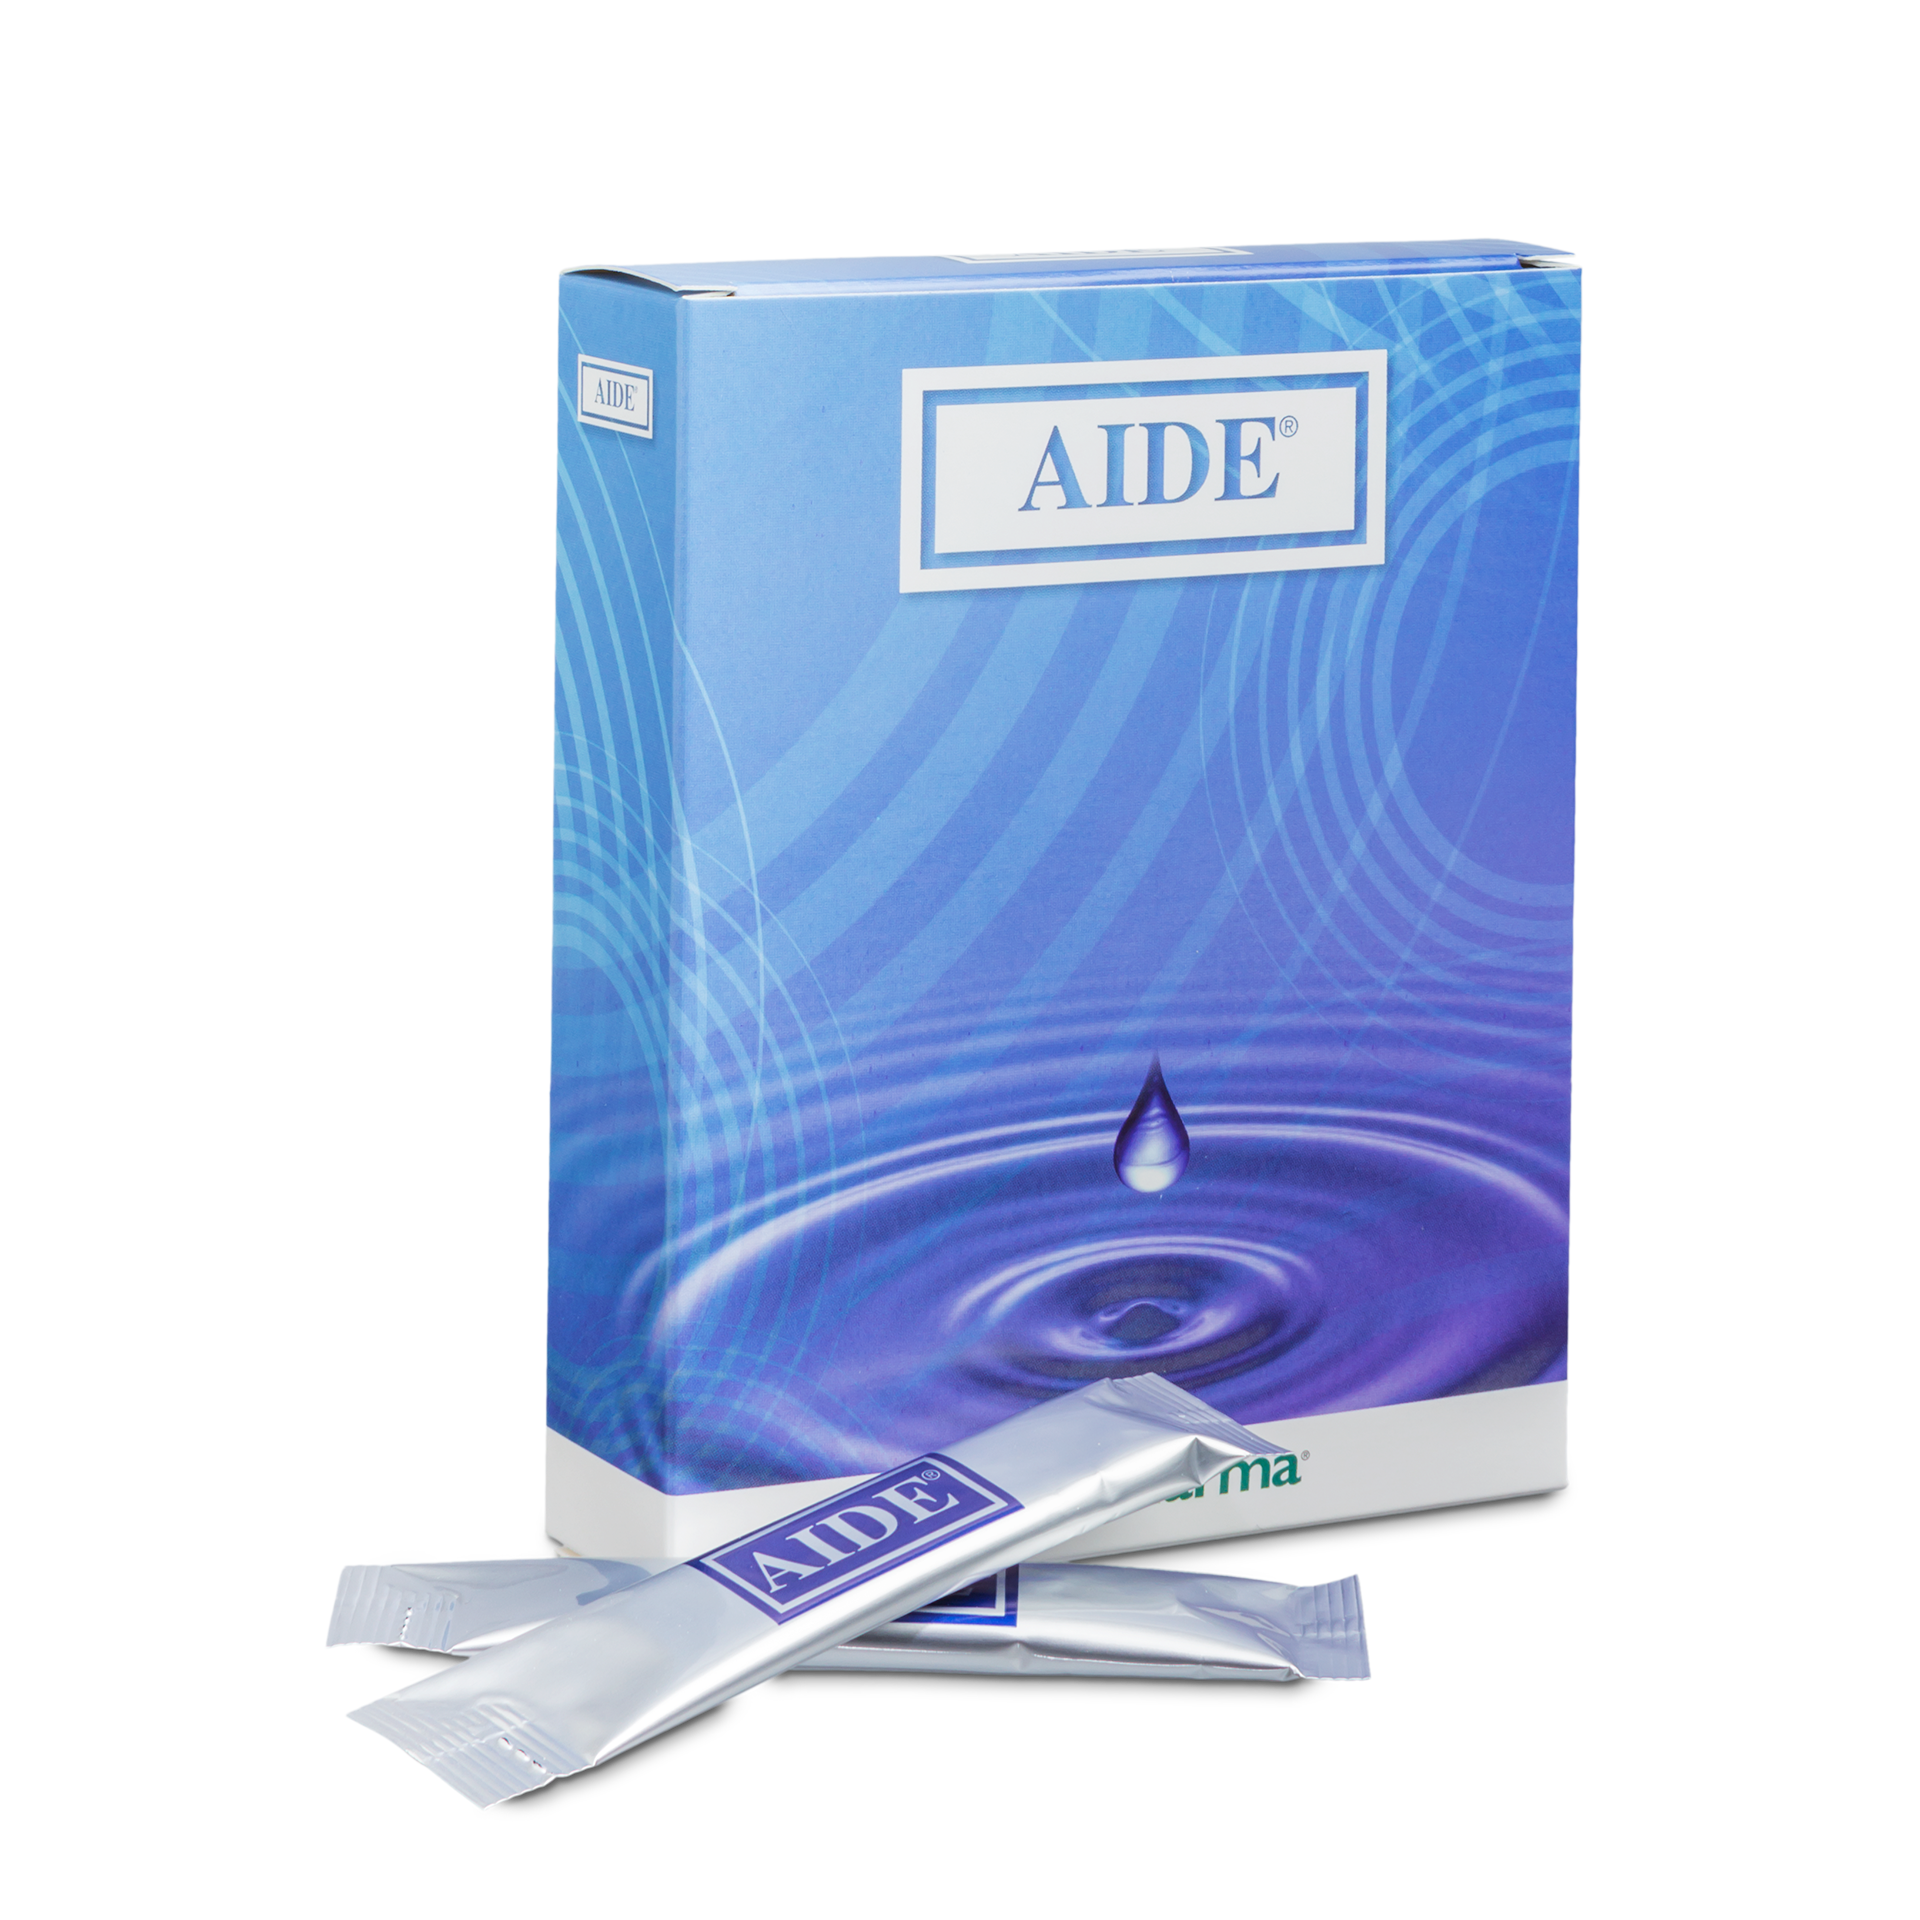 Aide®